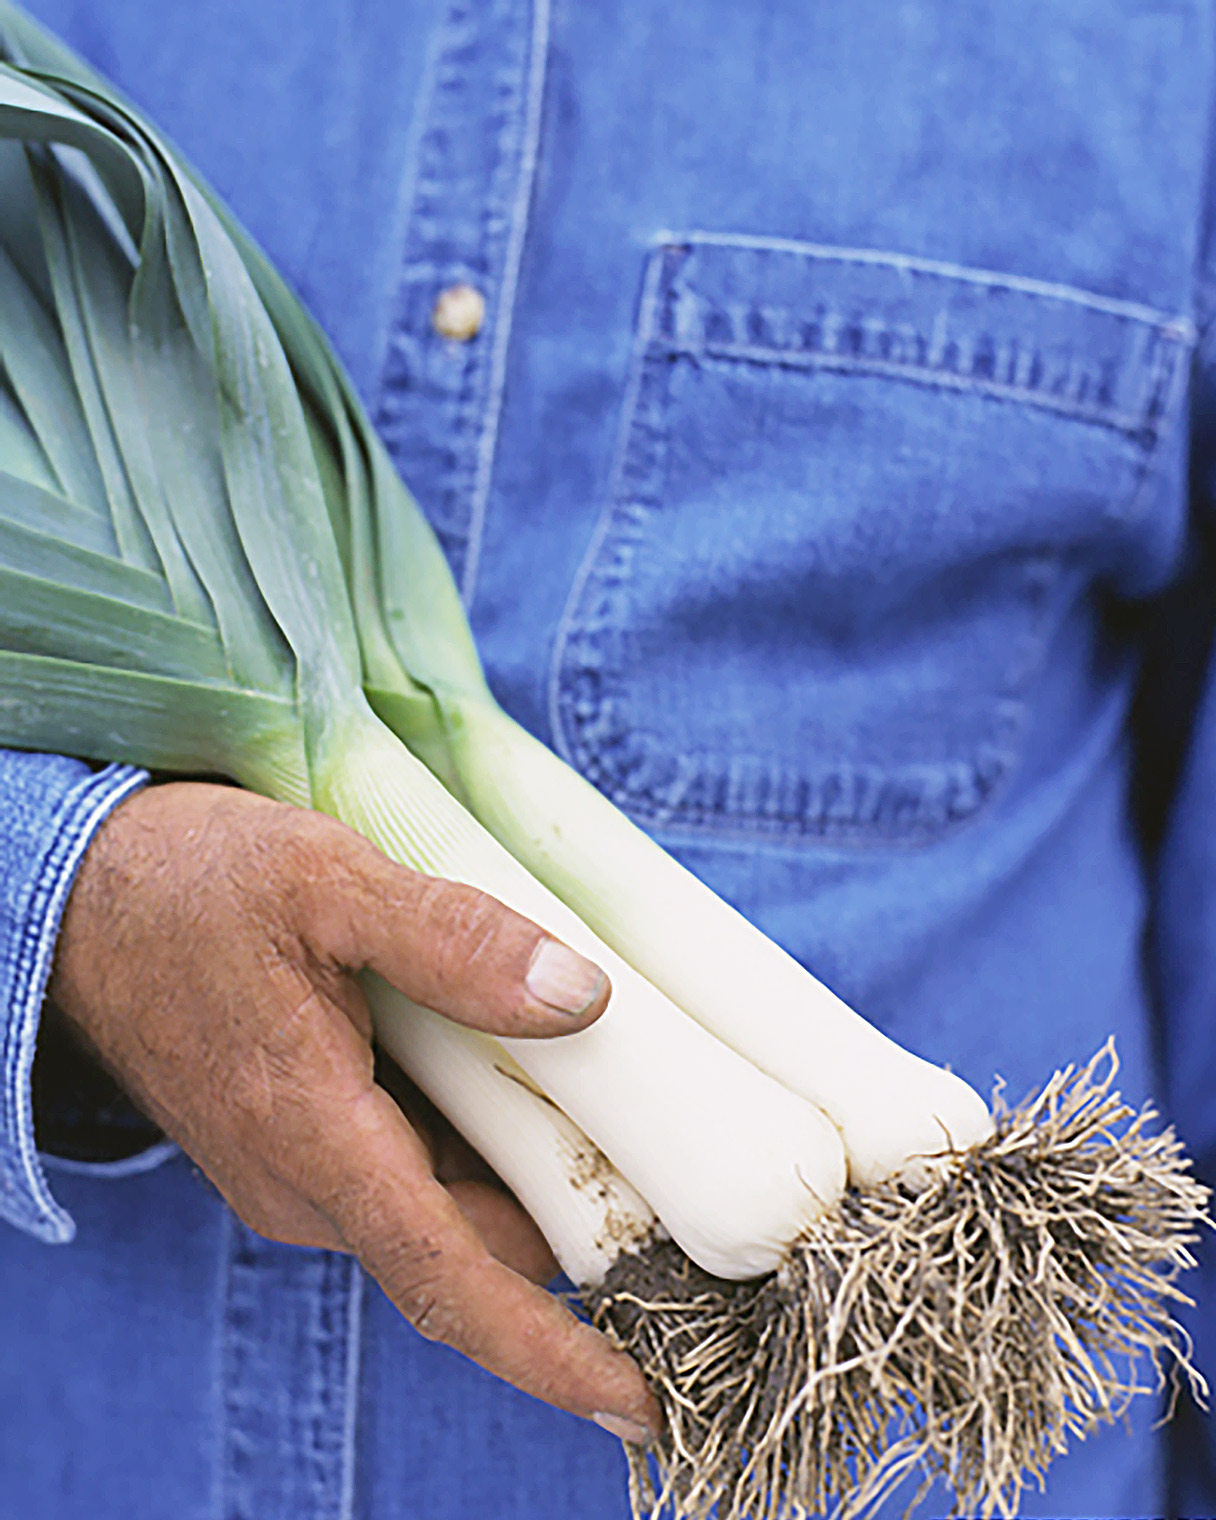 holding leeks in hand